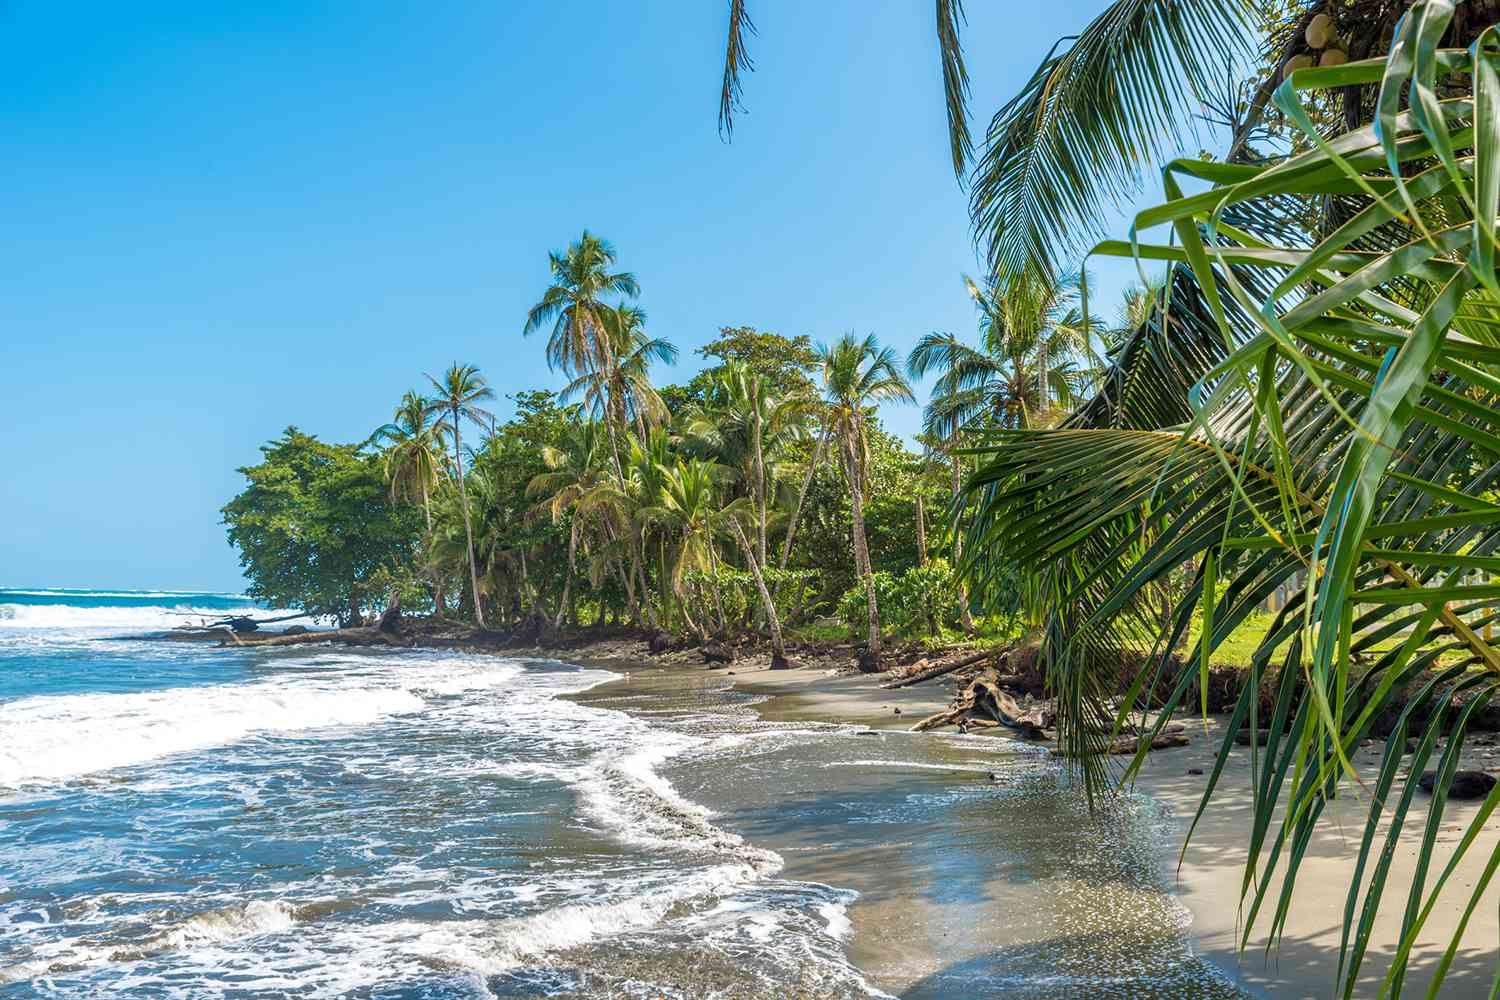 Waves hitting the sand at Playa Negra in Costa Rica